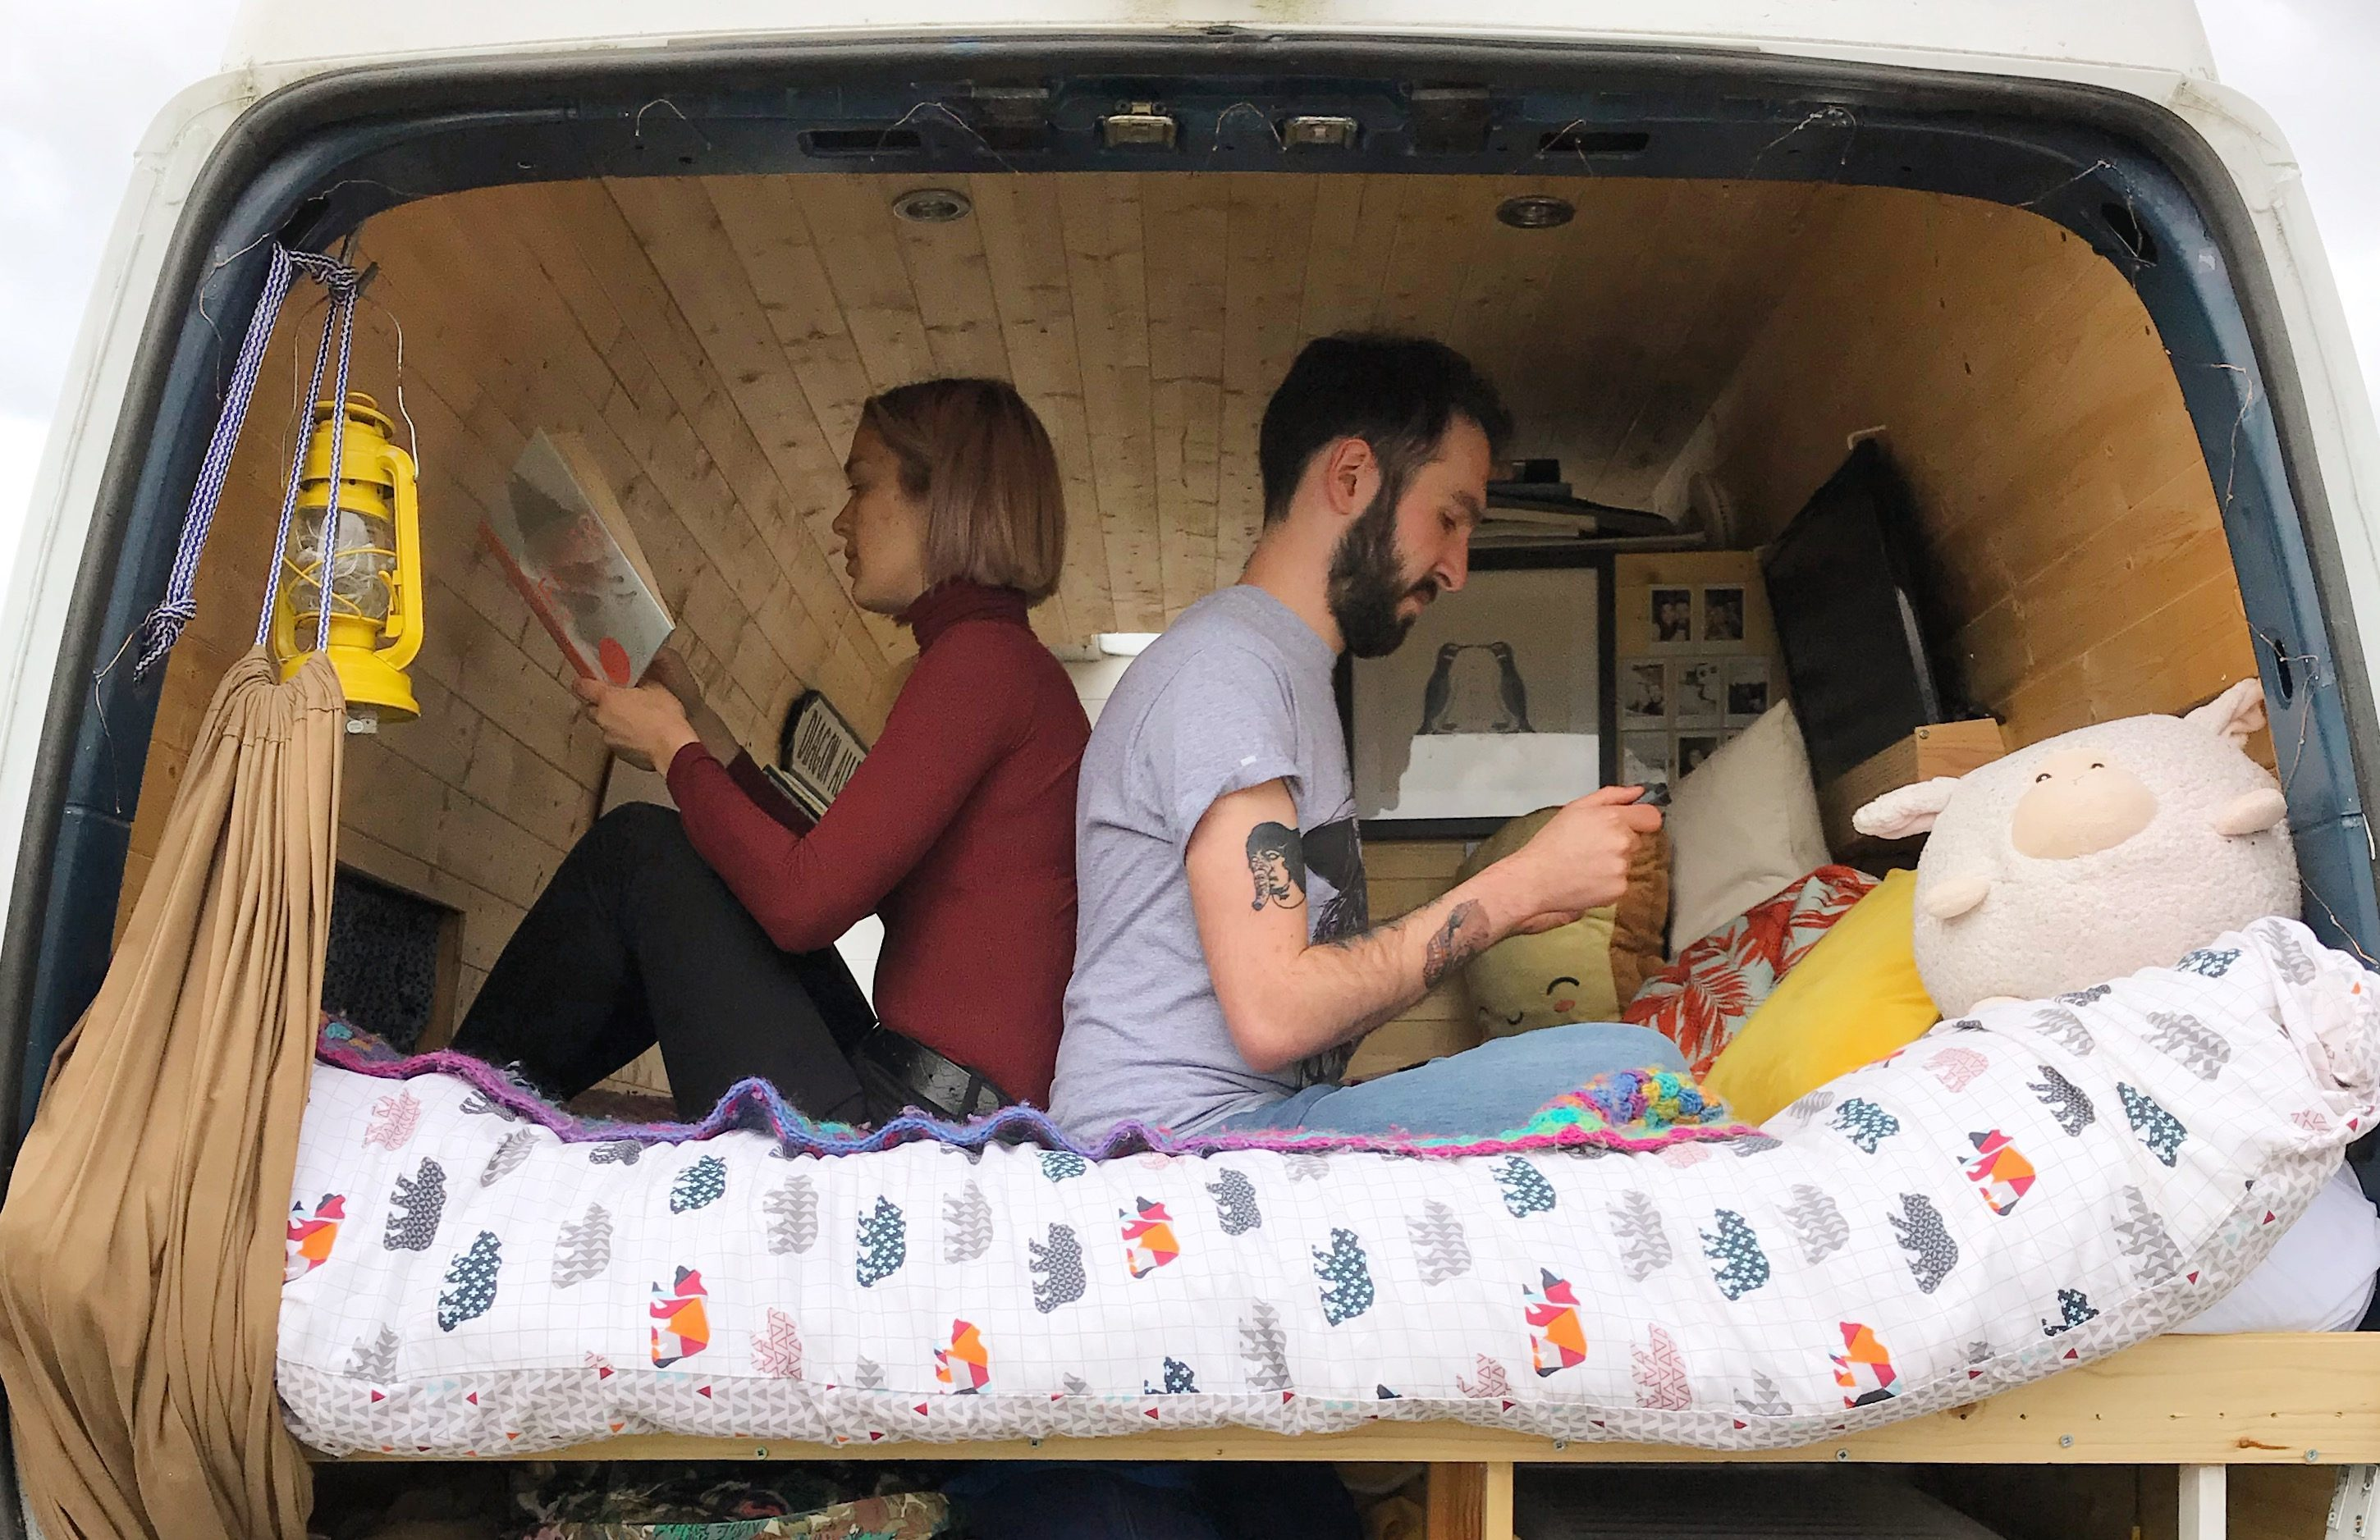 Living off the grid - bed